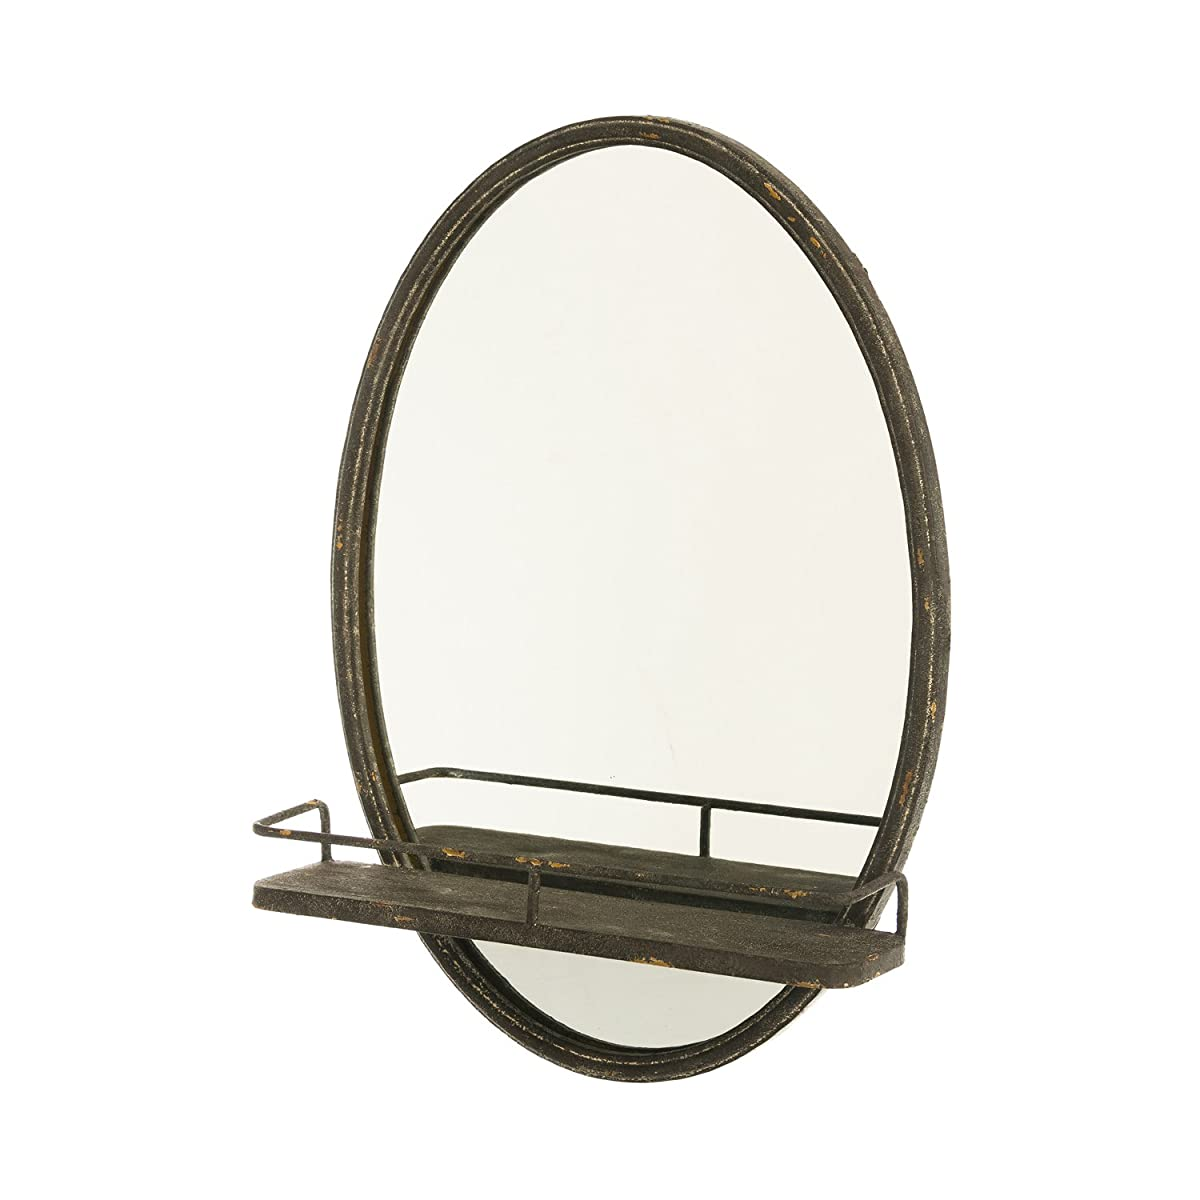 Metal Wall Mirror With Shelf Cape Craftsmen Wall Mirror With Metal Shelf